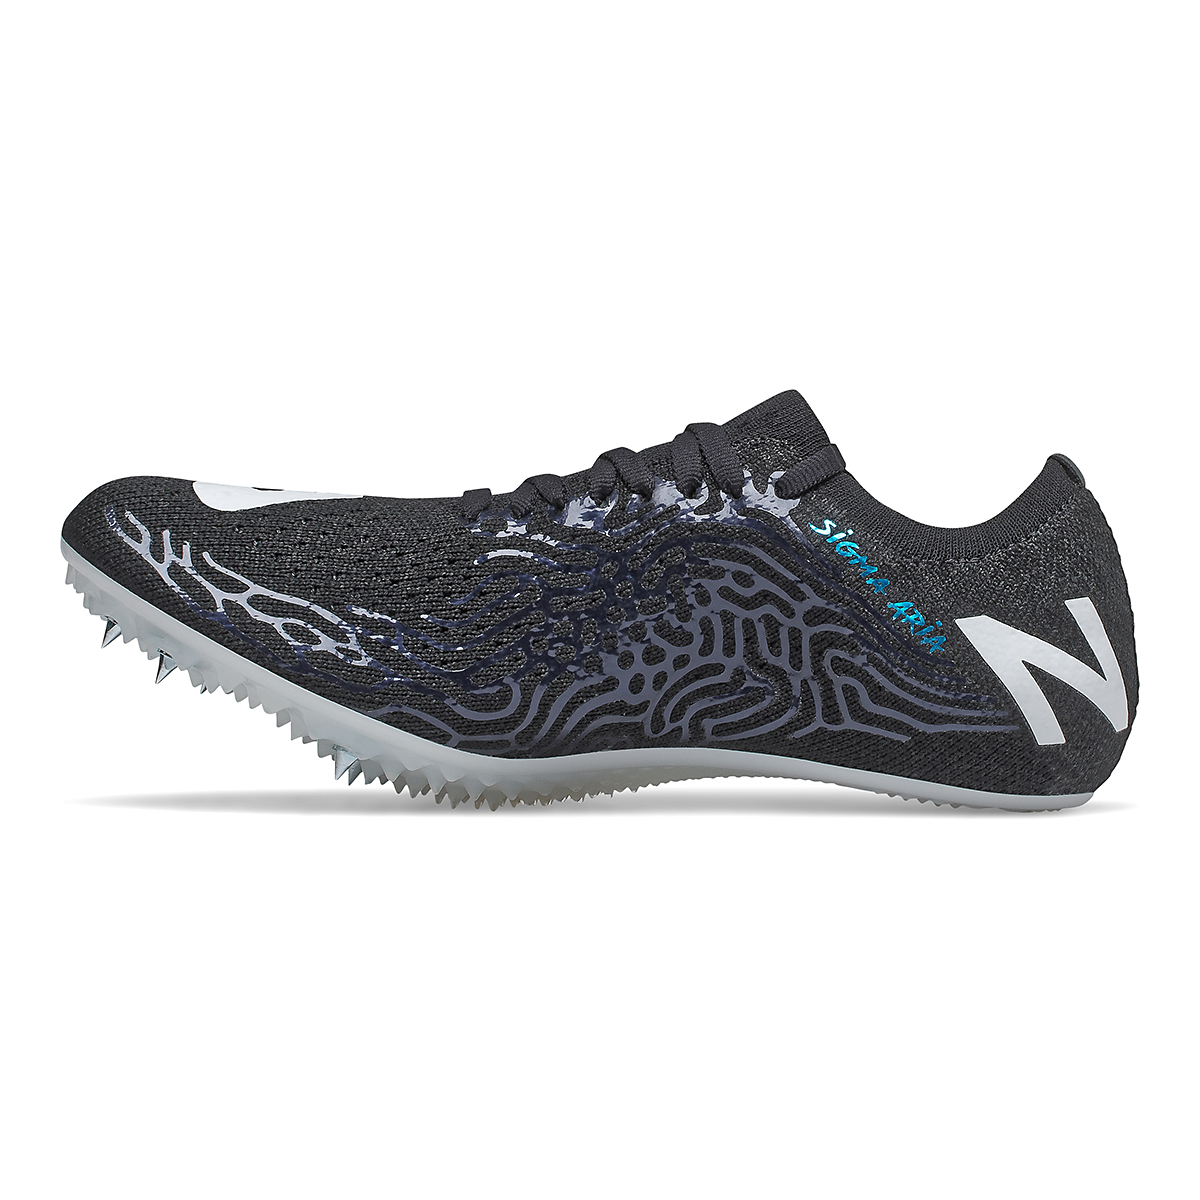 Women's New Balance Sigma Aria Track Spikes - Color: Black/White - Size: 5.5 - Width: Regular, Black/White, large, image 2